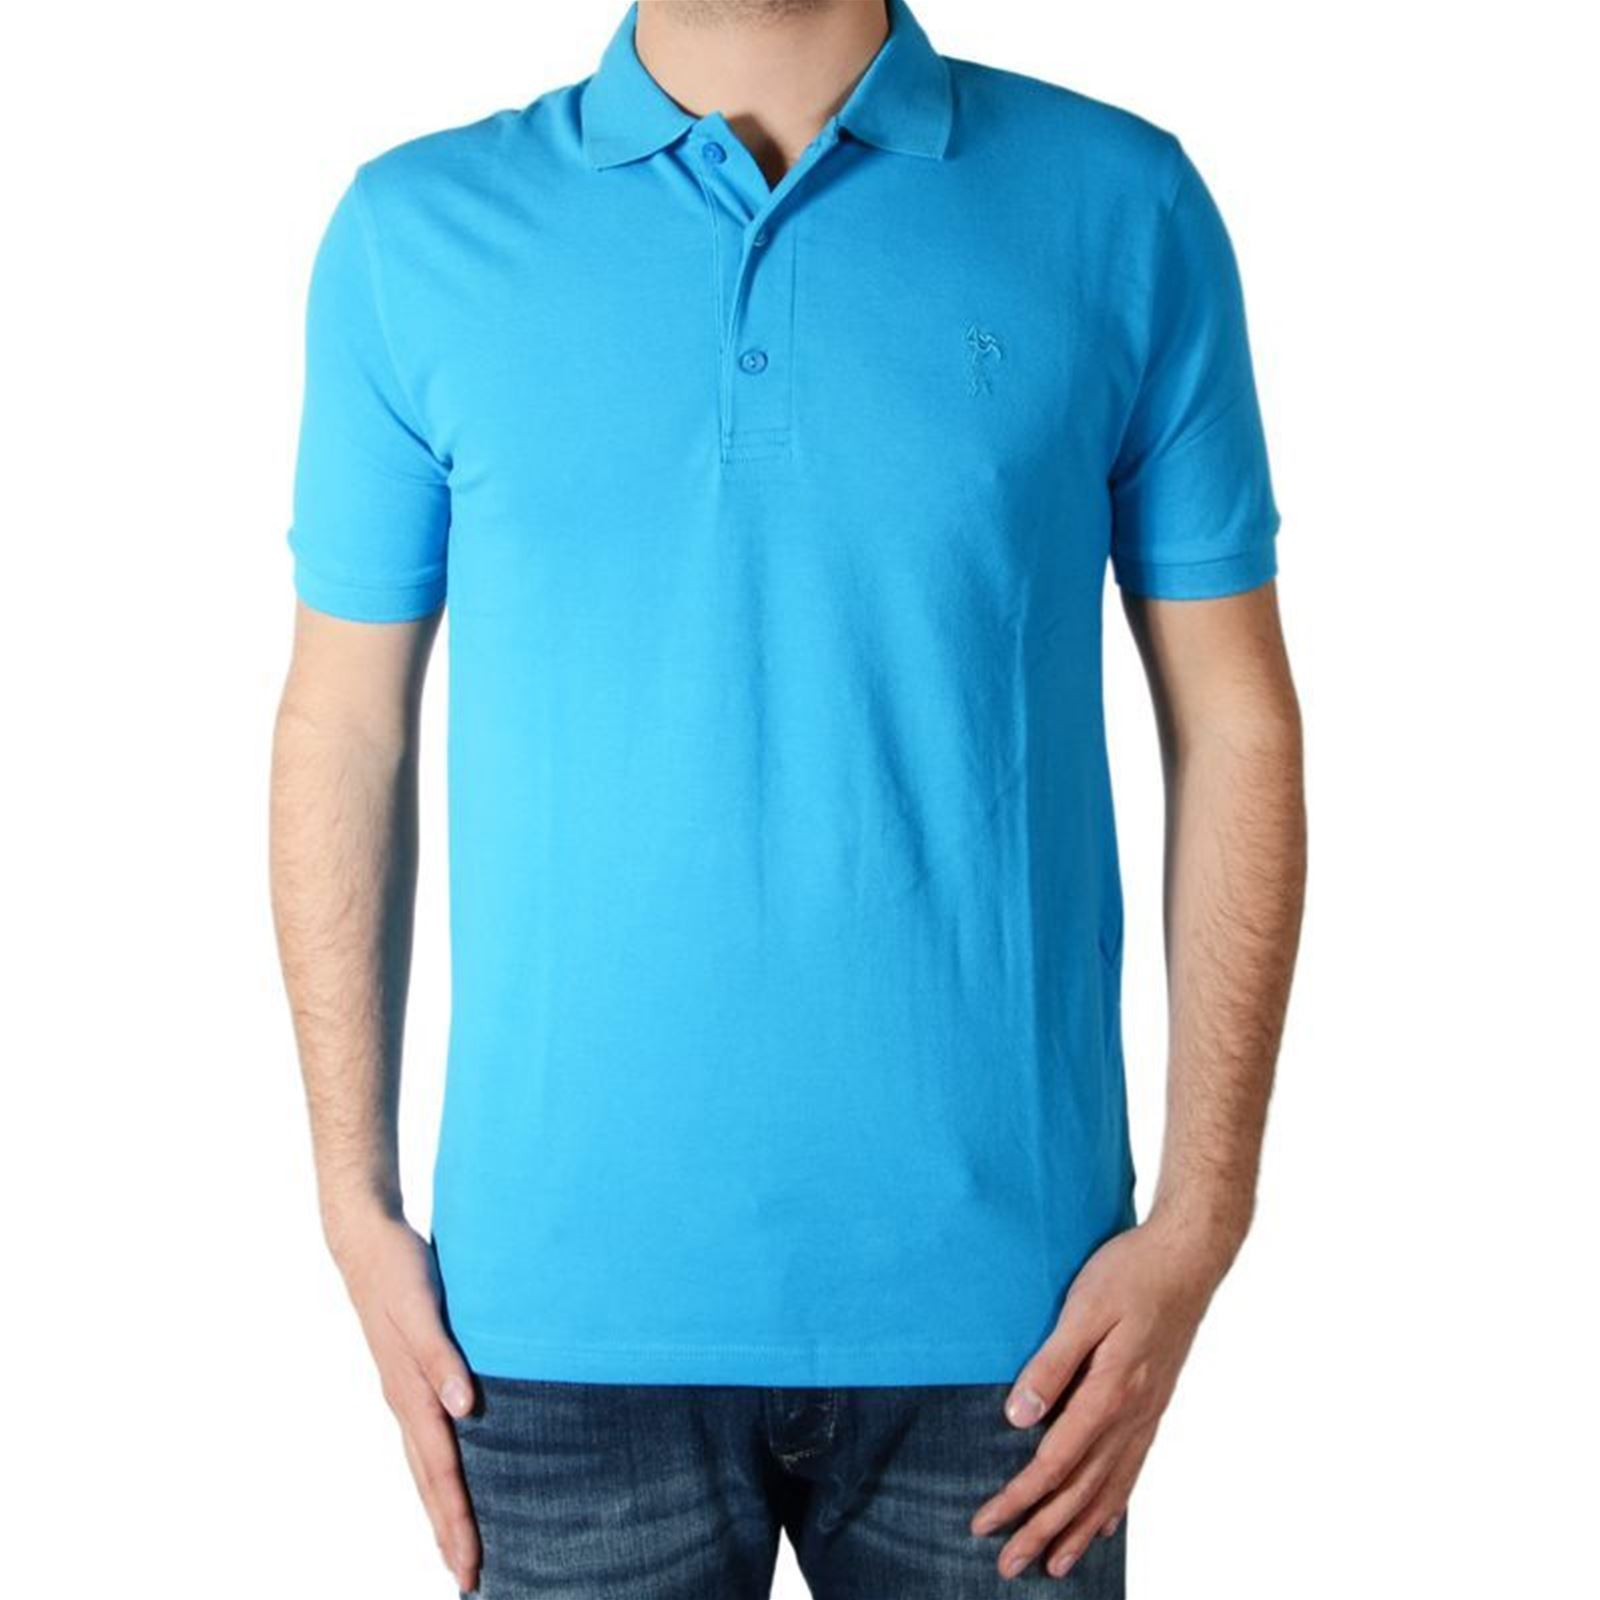 V Marion Manches Homme Roth Polo CourtesTurquoise BedCxo